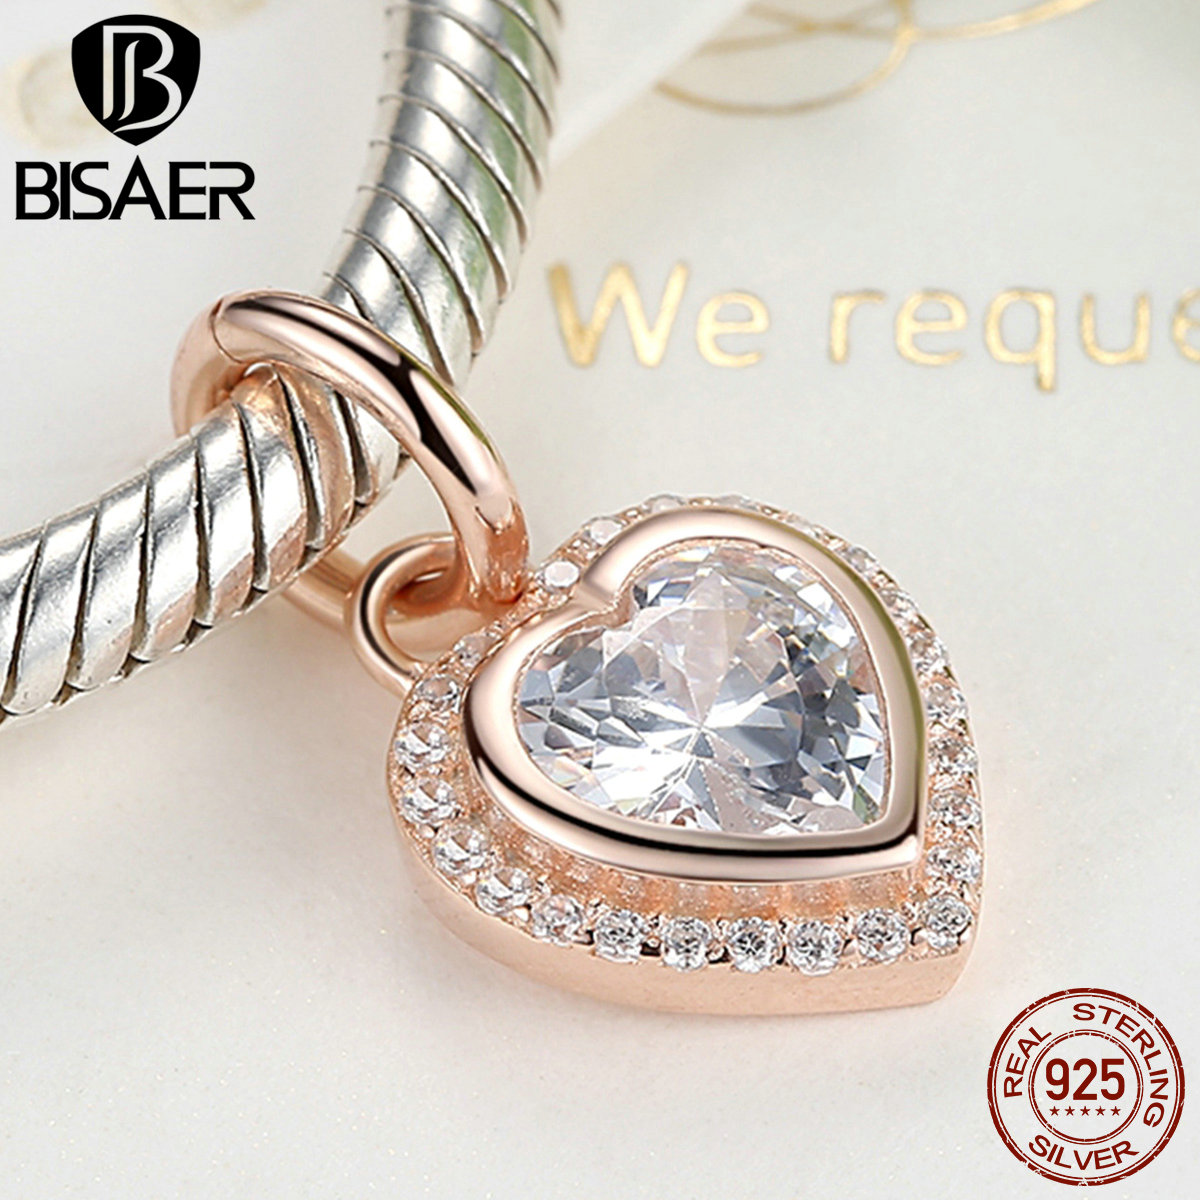 BISAER Hot Sale 100% 925 Sterling Silver Sparkling Love, Rose \u0026amp; Clear CZ Charms